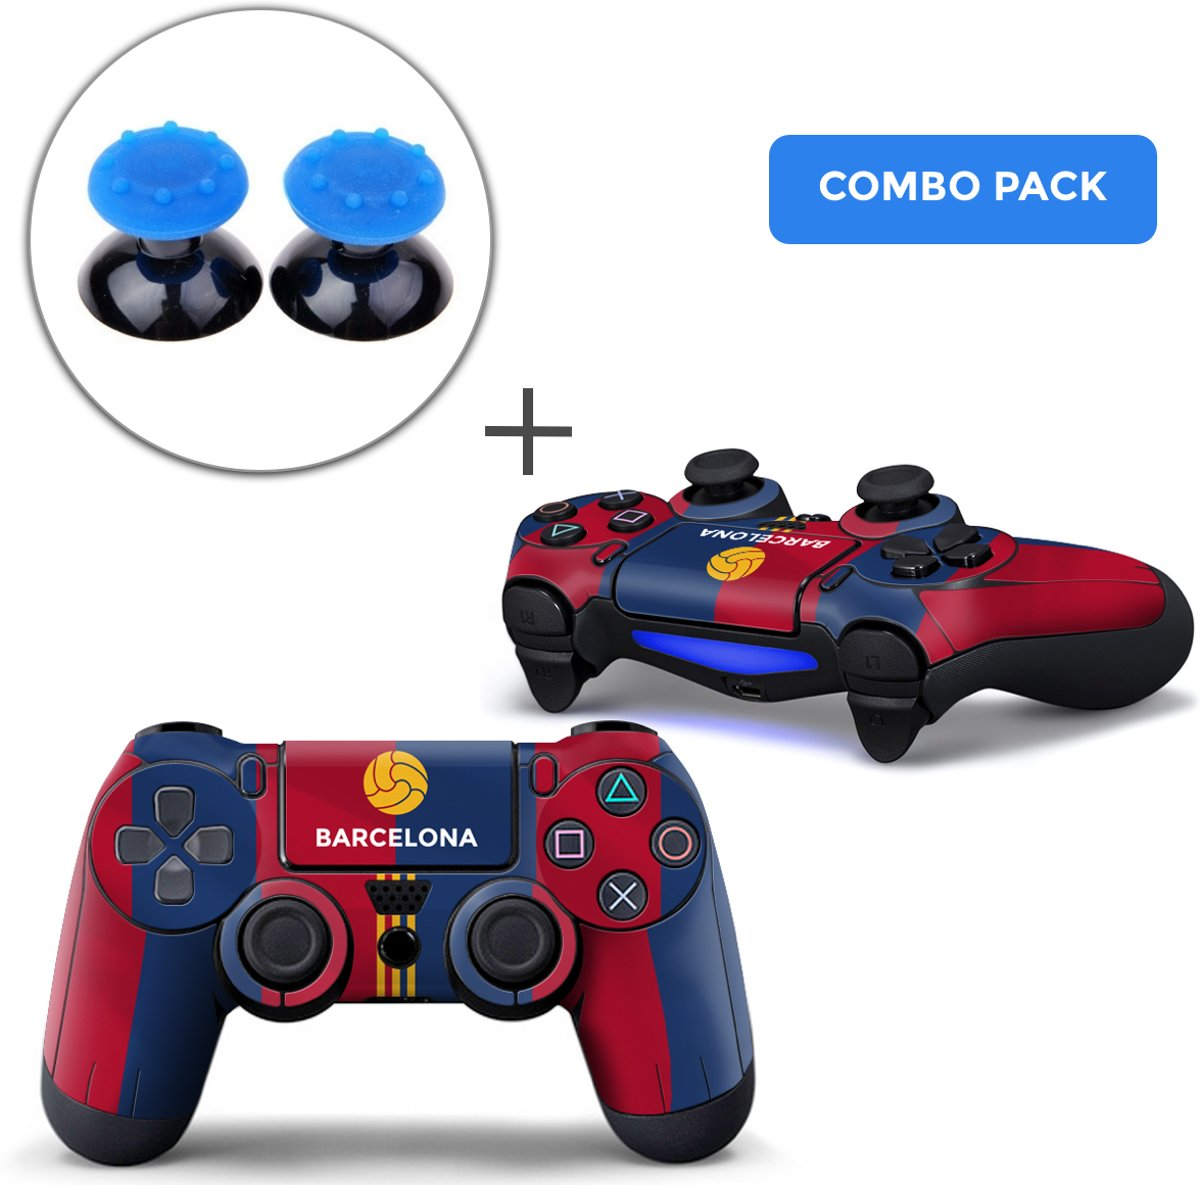 Barcelona Combo Pack - PS4 Controller Skins PlayStation Stickers + Thumb Grips Blauw